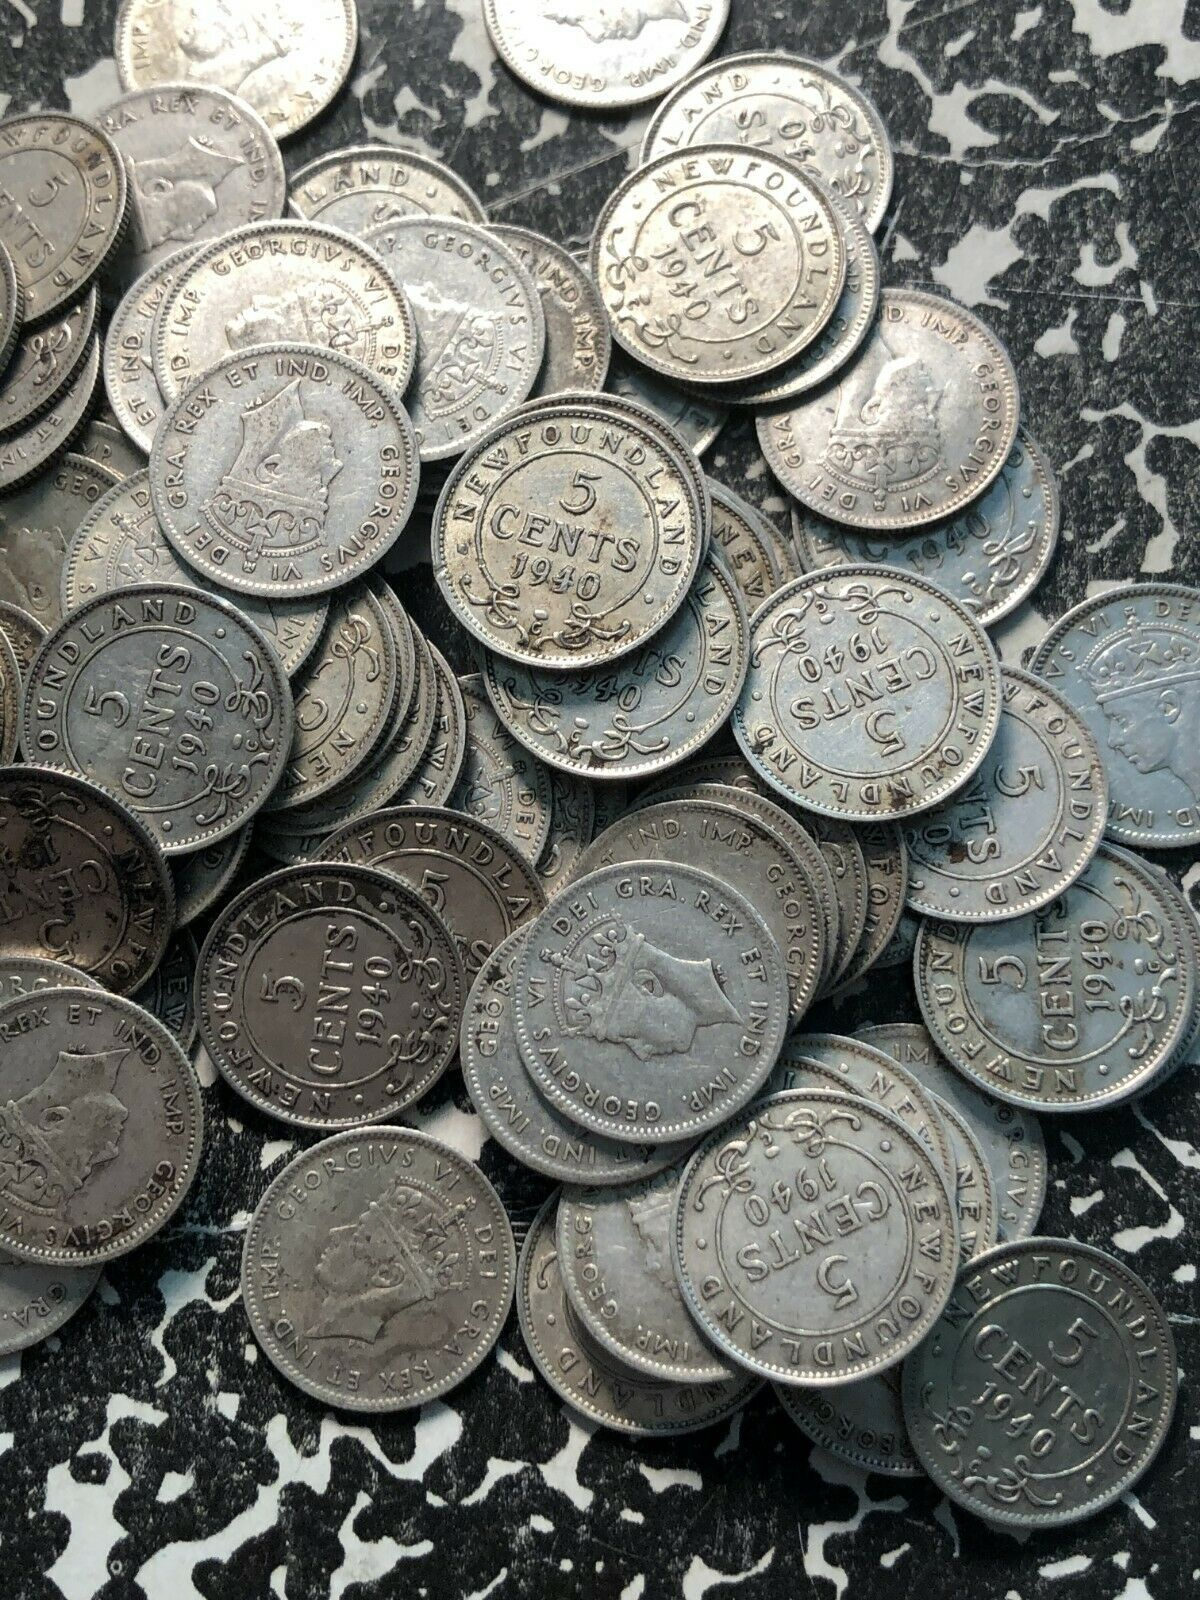 1 Coin Only Circulated Many Available 1941-C Newfoundland 10 Cent Silver!